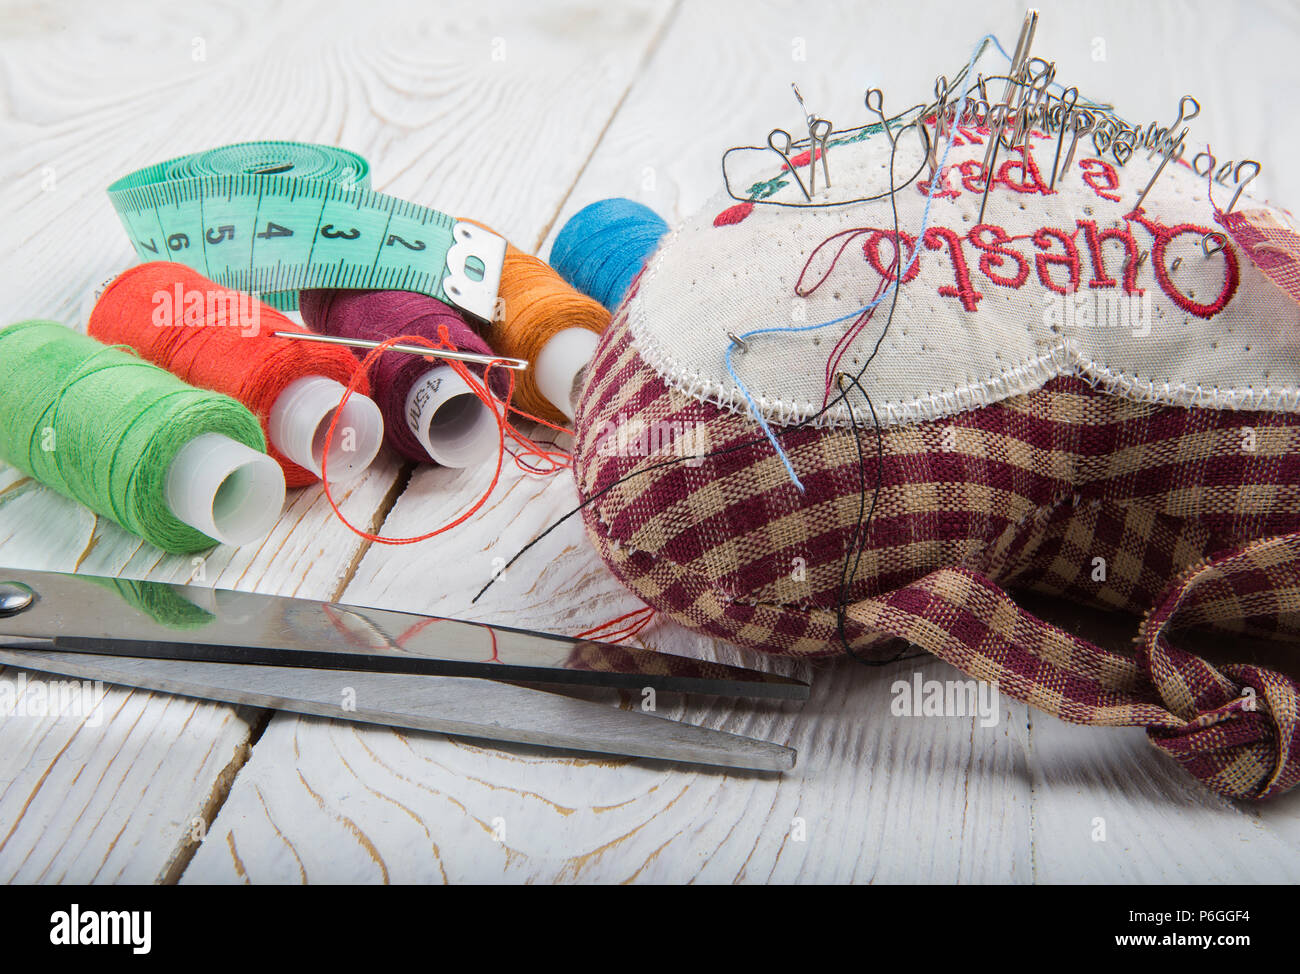 Tools for sewing- thread, scissors, pins Stock Photo